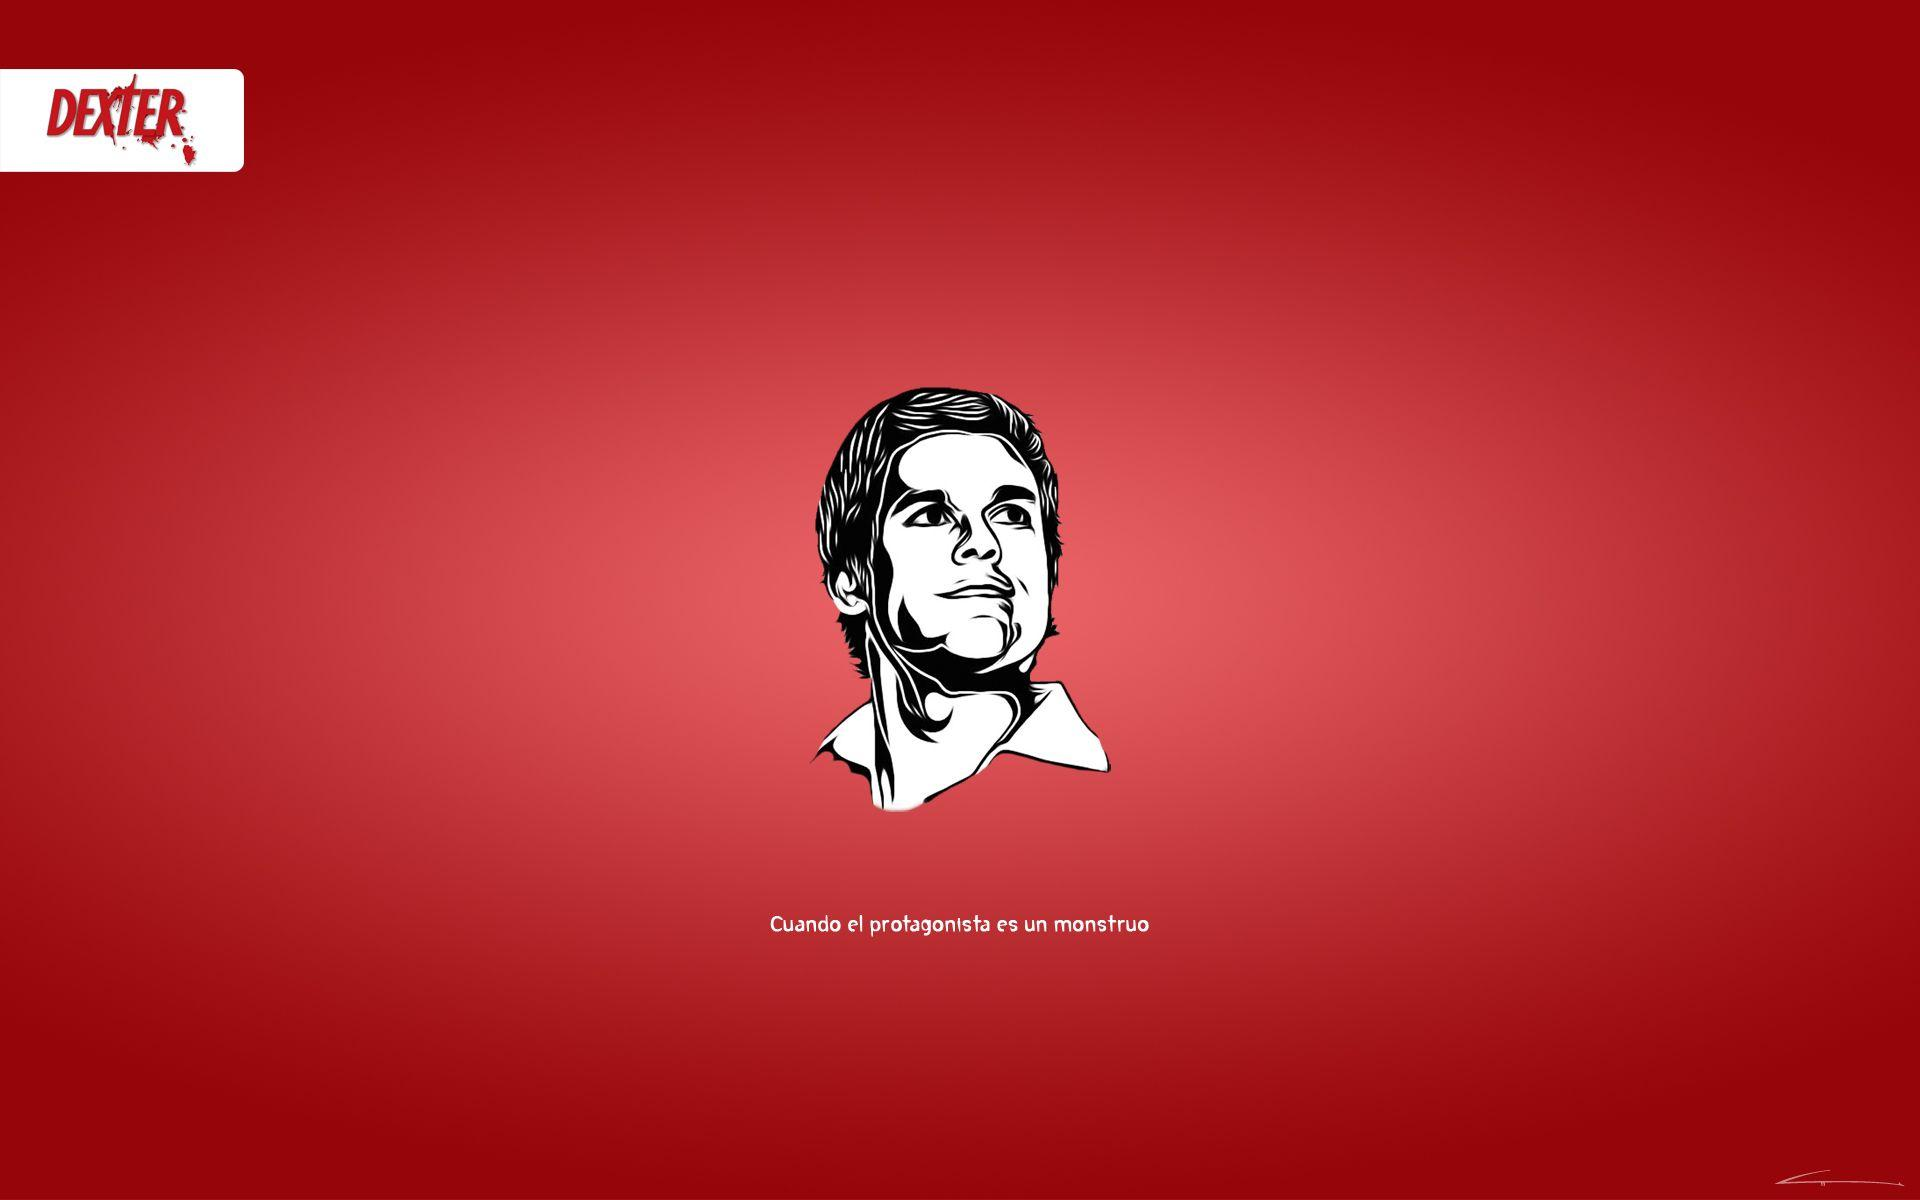 Image For > Dexter Quote Wallpapers